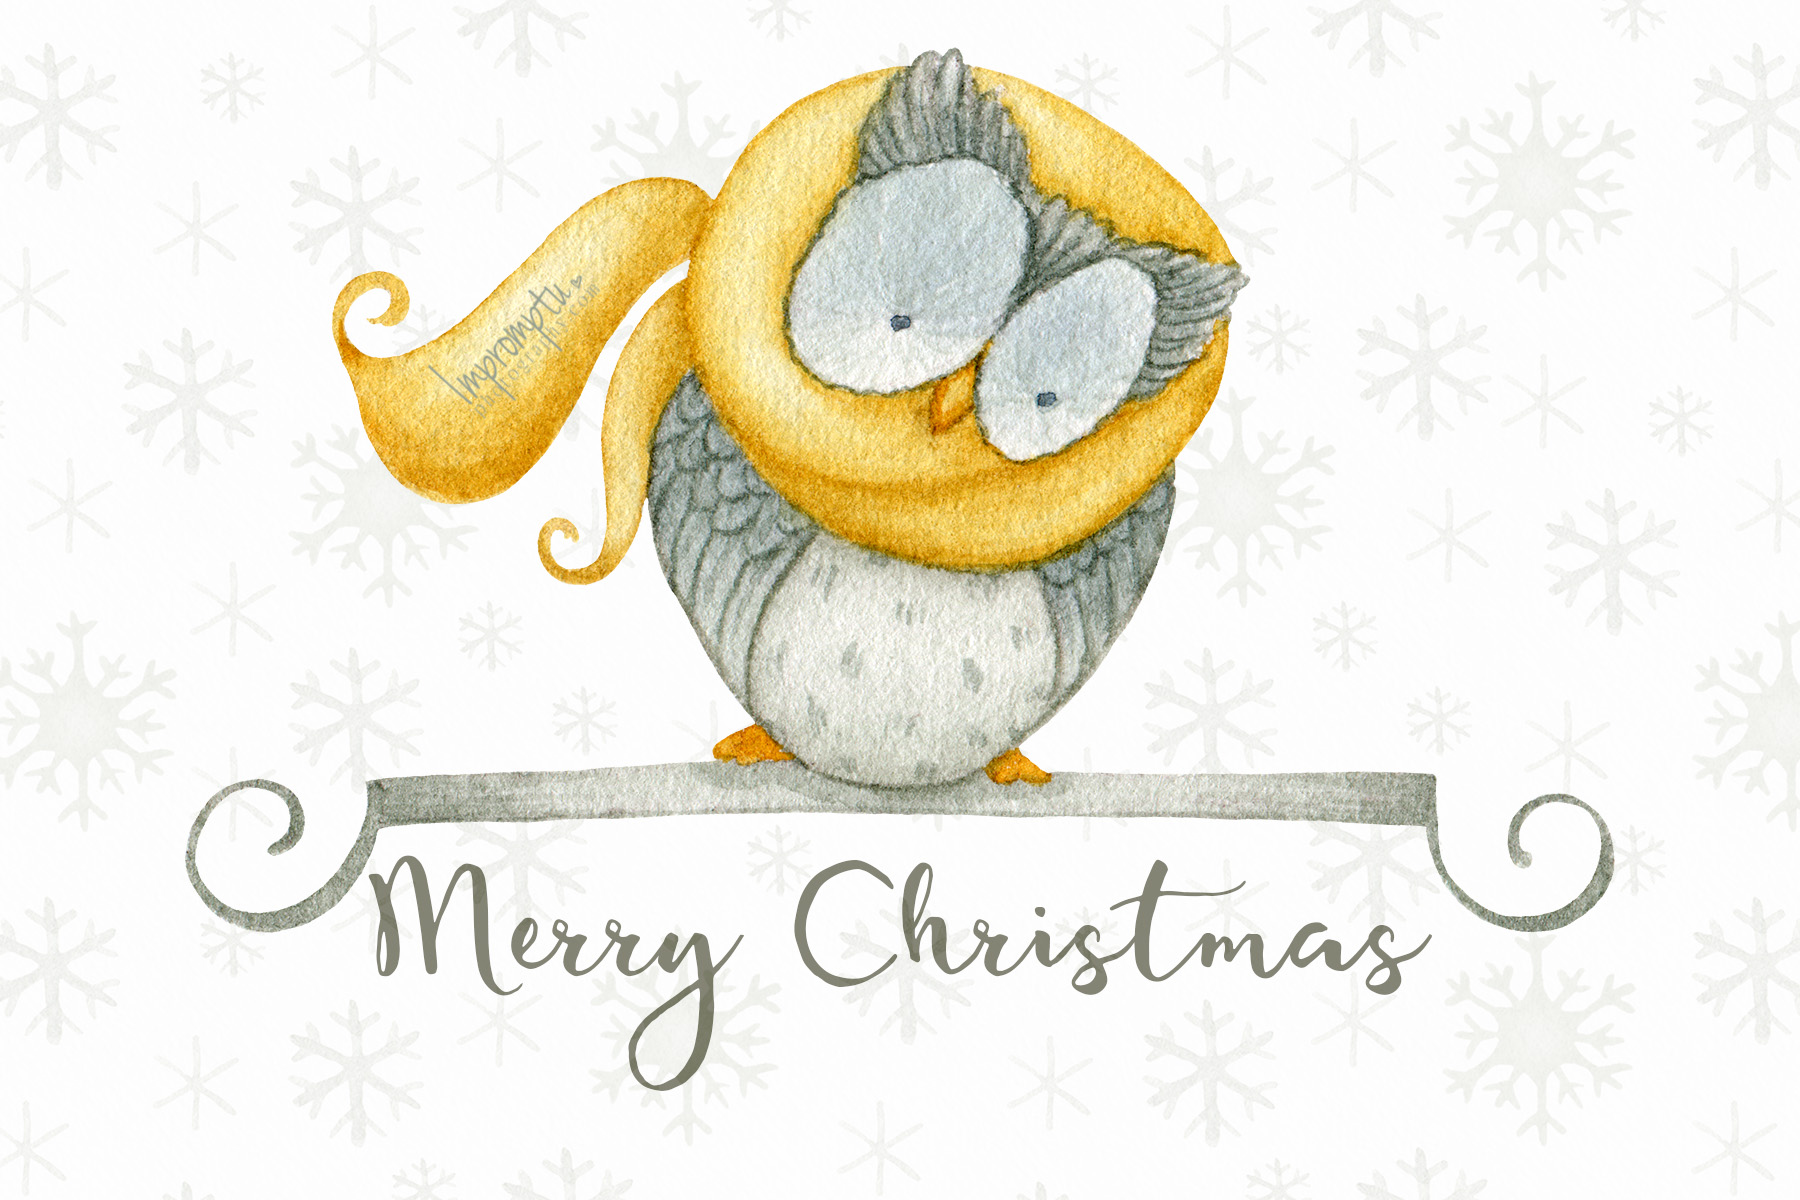 Owl wishing a merry christmas ©ImpromtpuPhotography .jpg